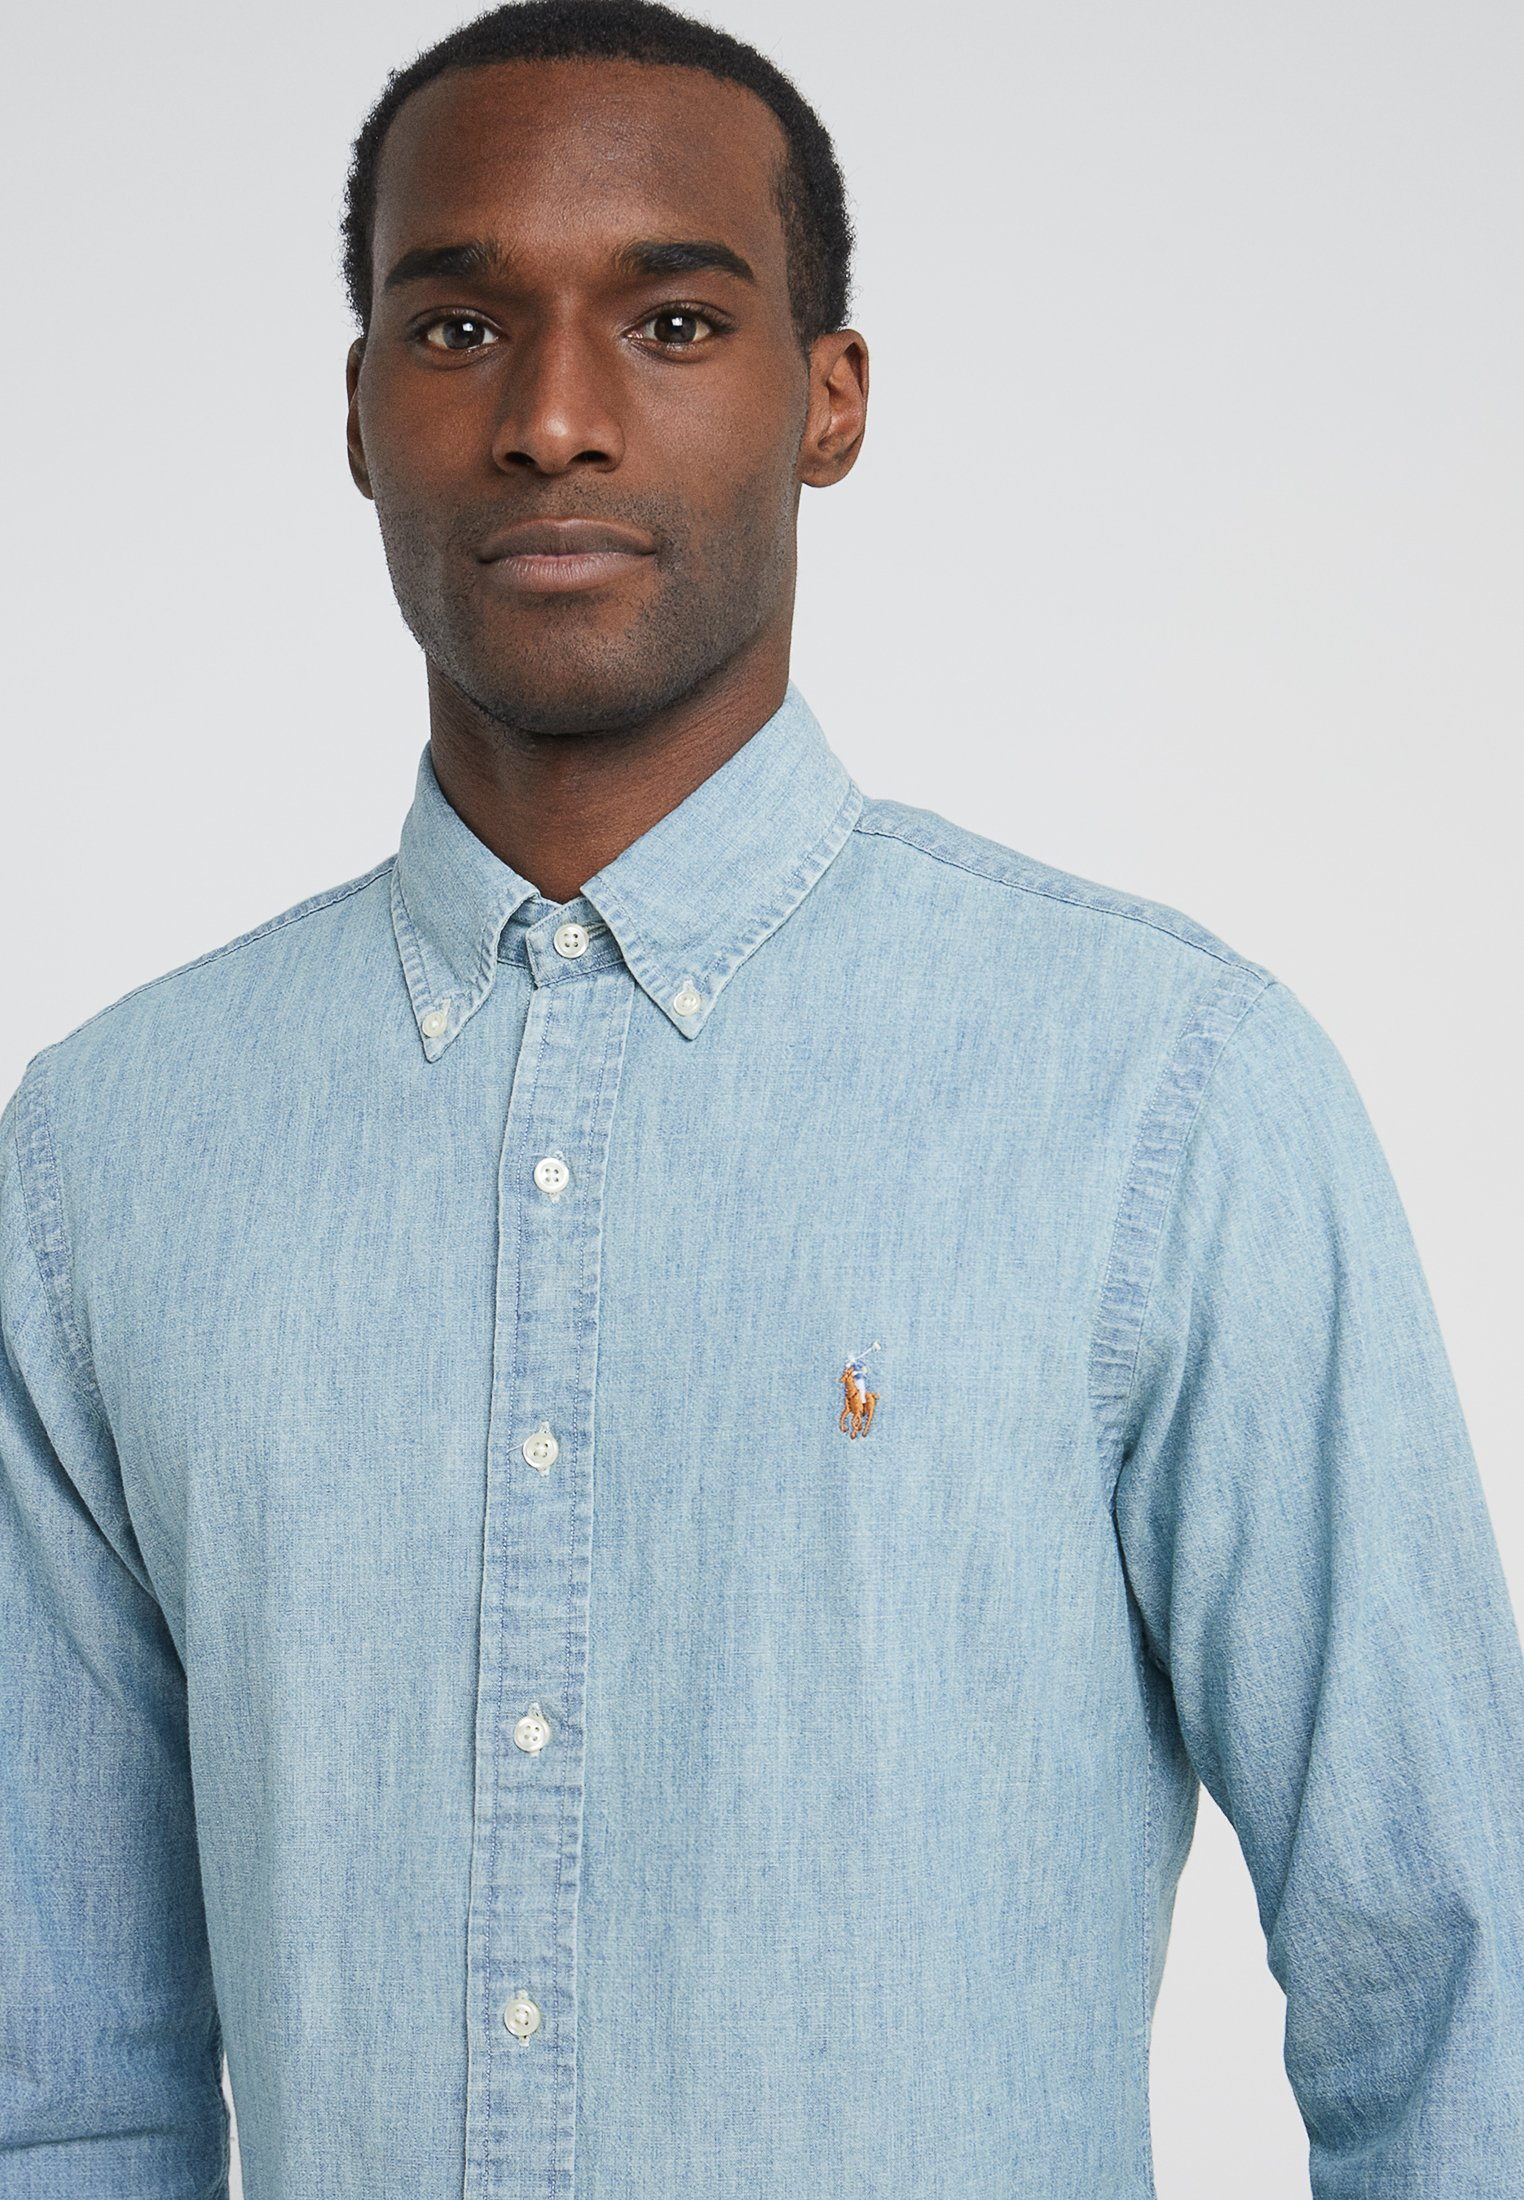 Polo Ralph Lauren Skjorta - Medium Wash